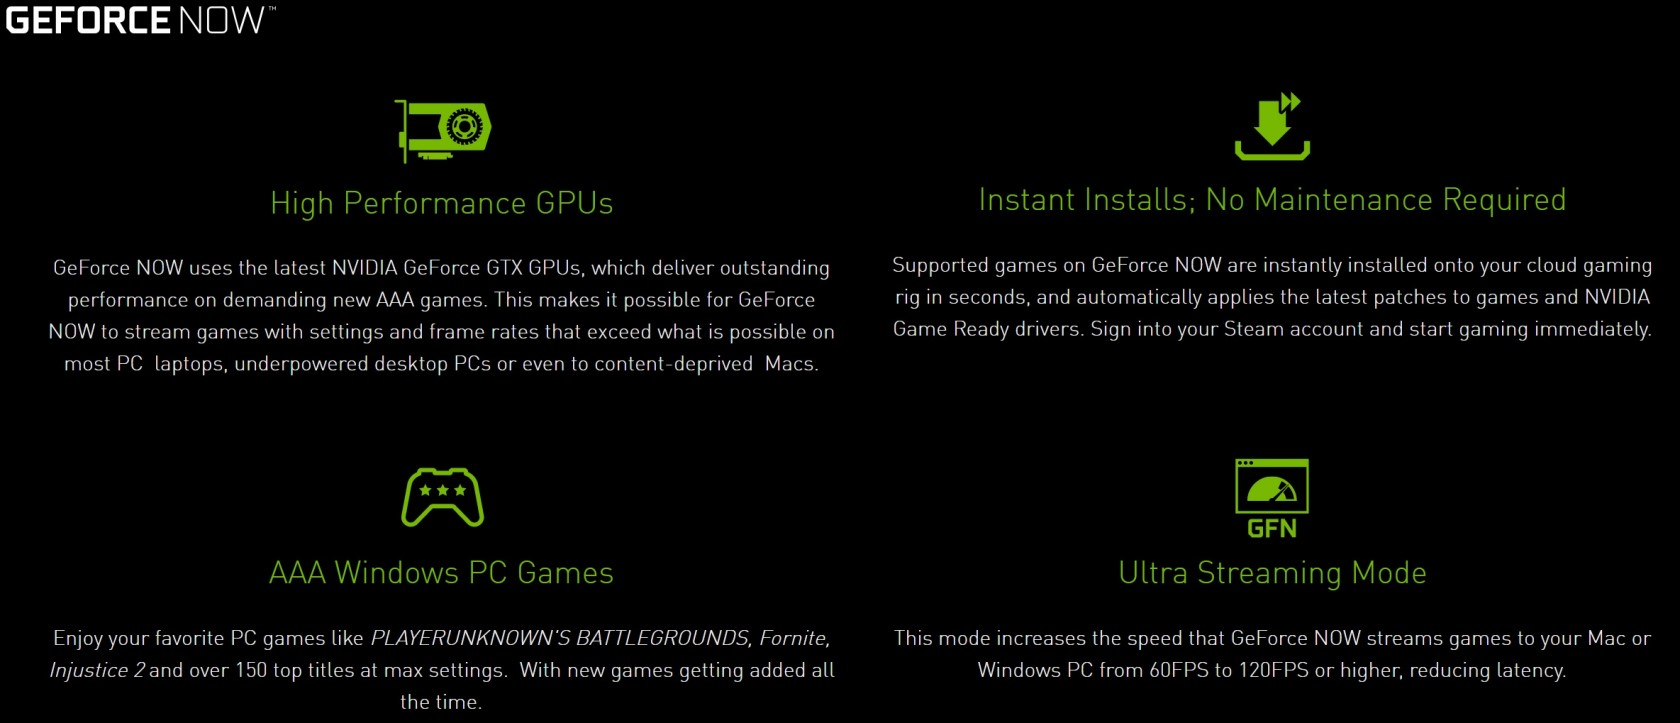 geforce now alternatives and similar software - alternativeto